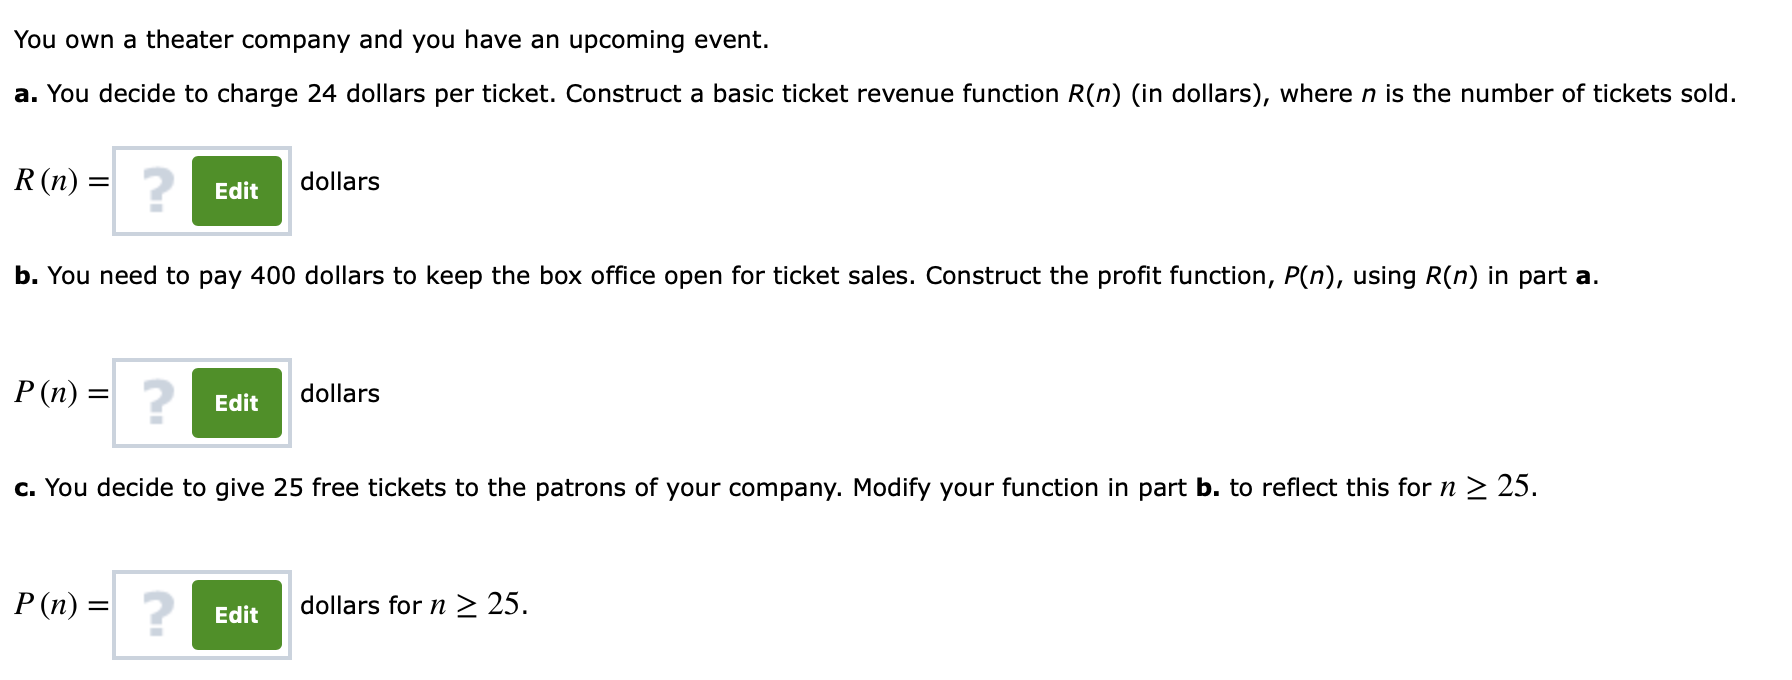 You own a theater company and you have an upcoming event. a. You decide to charge 24 dollars per ticket. Construct a basic ticket revenue function R(n) (in dollars), where n is the number of tickets sold. R (n) = dollars Edit b. You need to pay 400 dollars to keep the box office open for ticket sales. Construct the profit function, P(n), using R(n) in part a. 2 P (n) = dollars Edit c. You decide to give 25 free tickets to the patrons of your company. Modify your function in part b. to reflect this for n 2 25 dollars for n 2 25 Edit